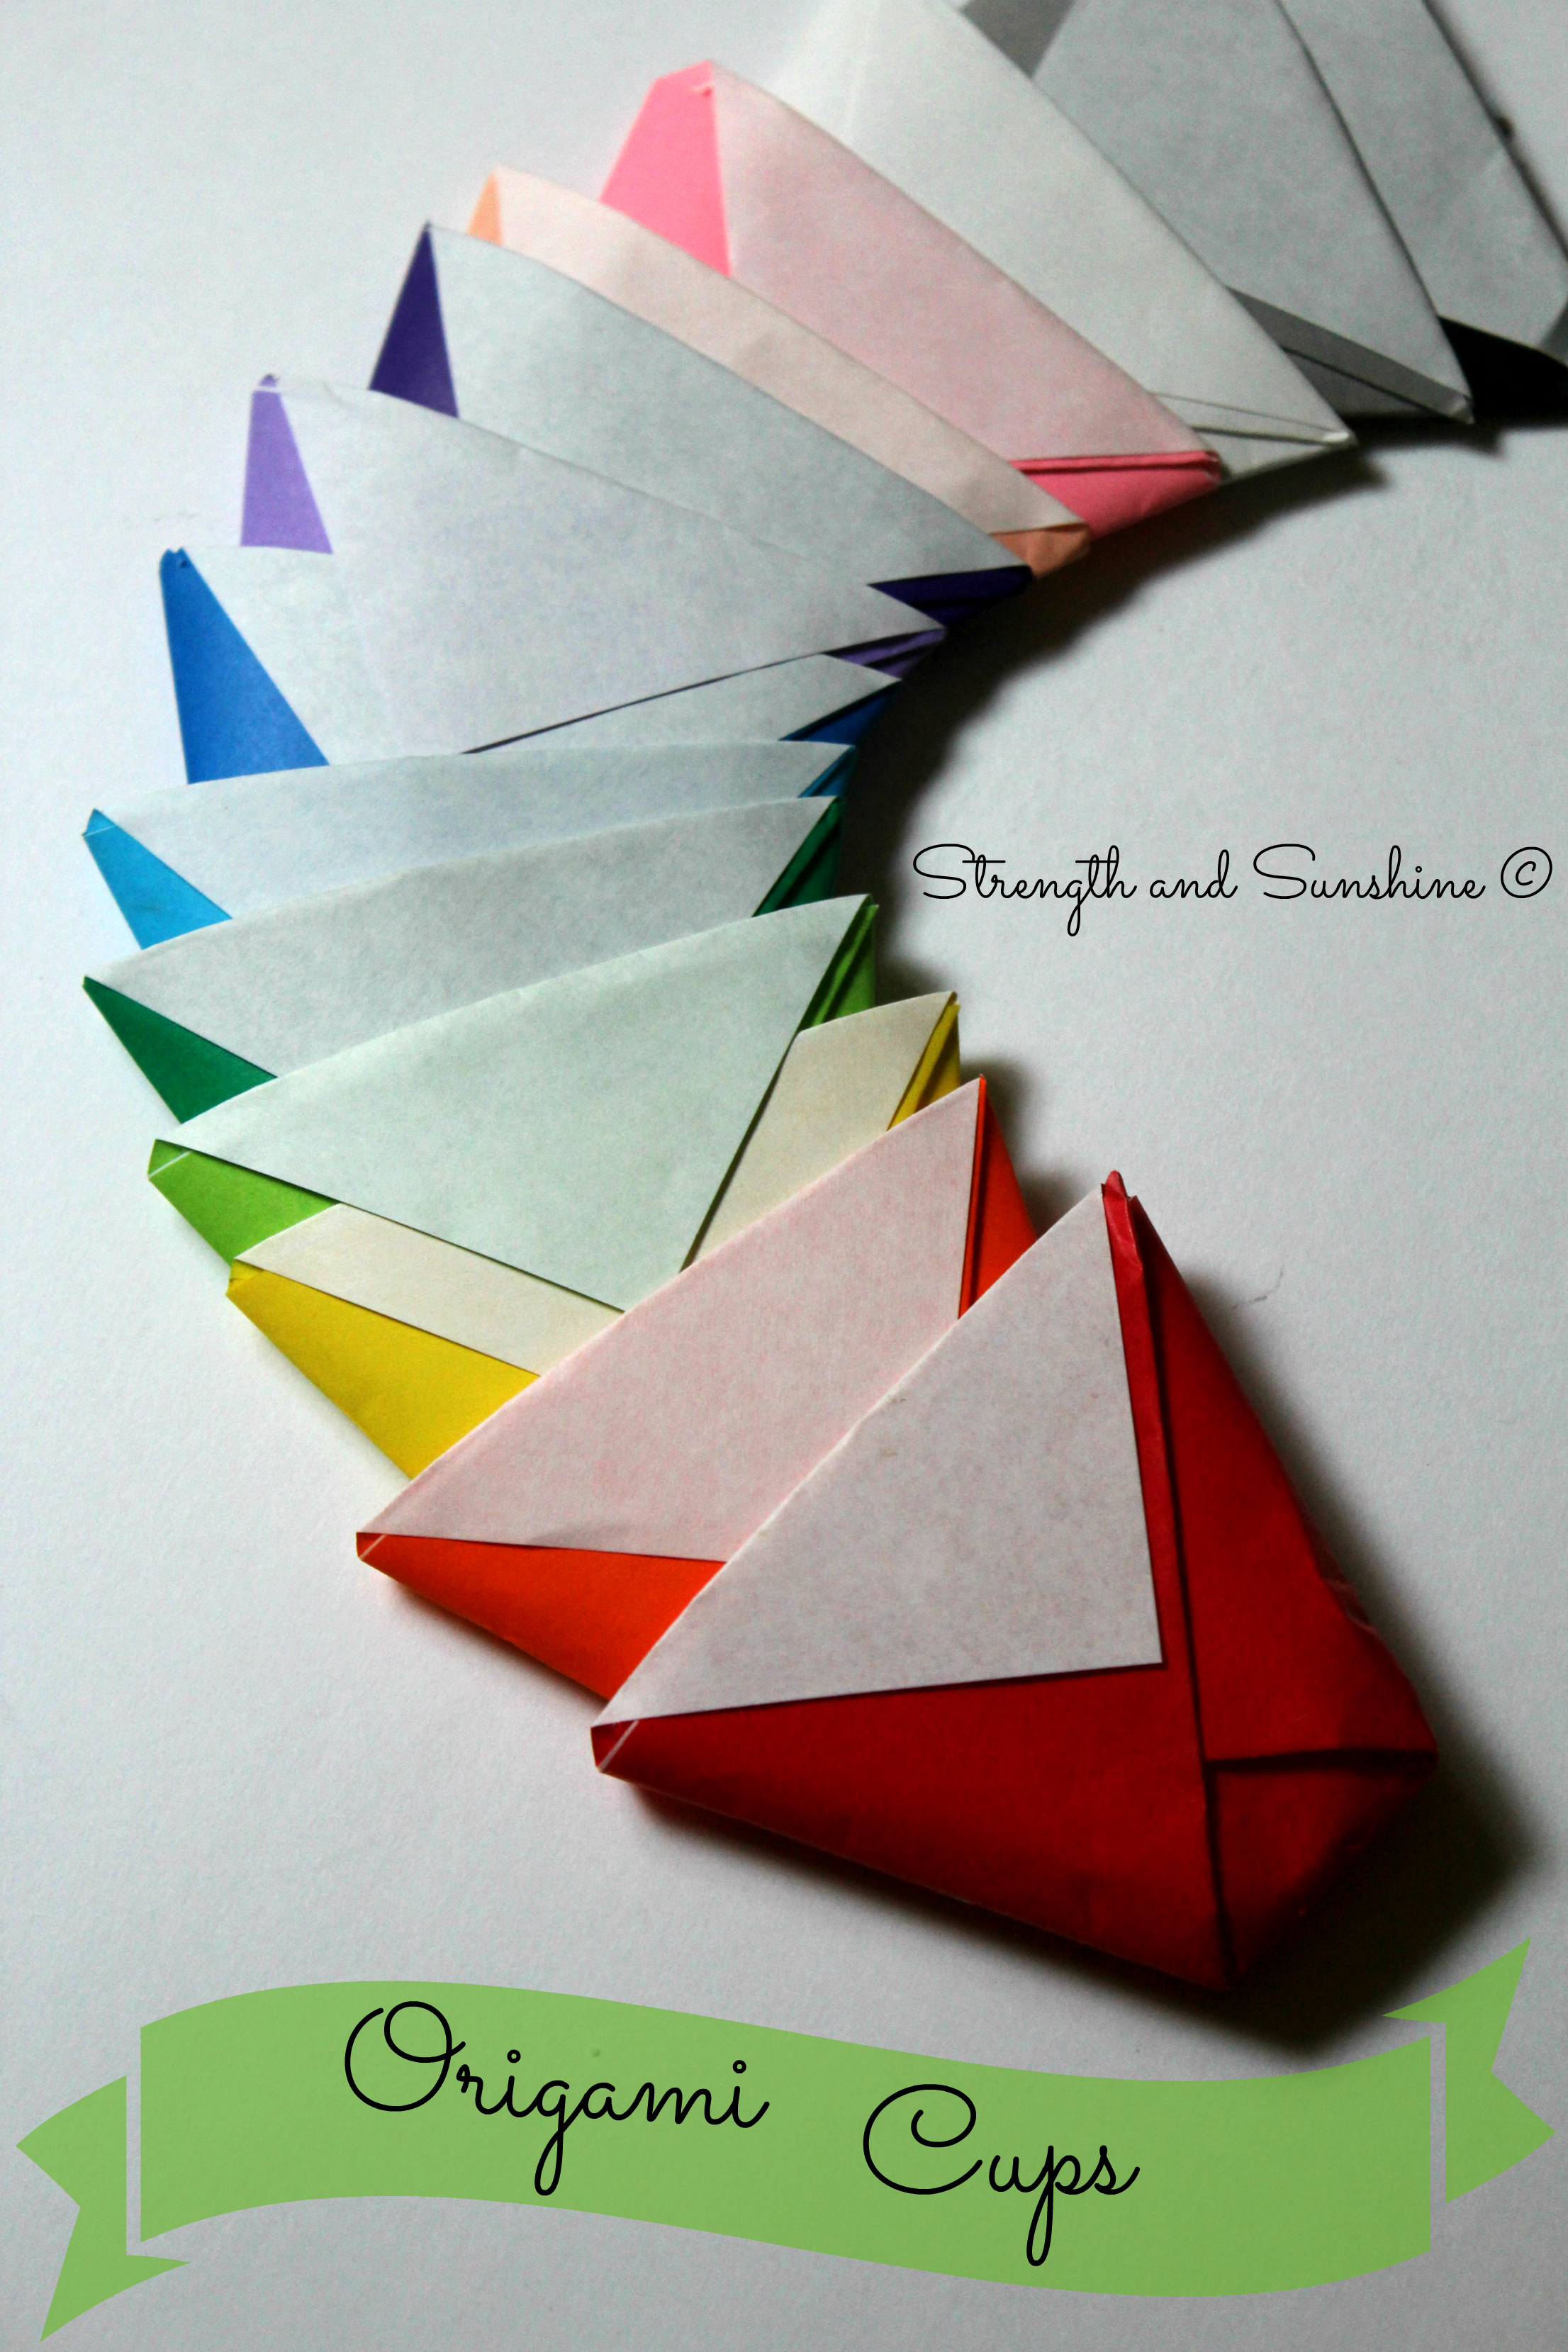 Origami Cups | Strength and Sunshine